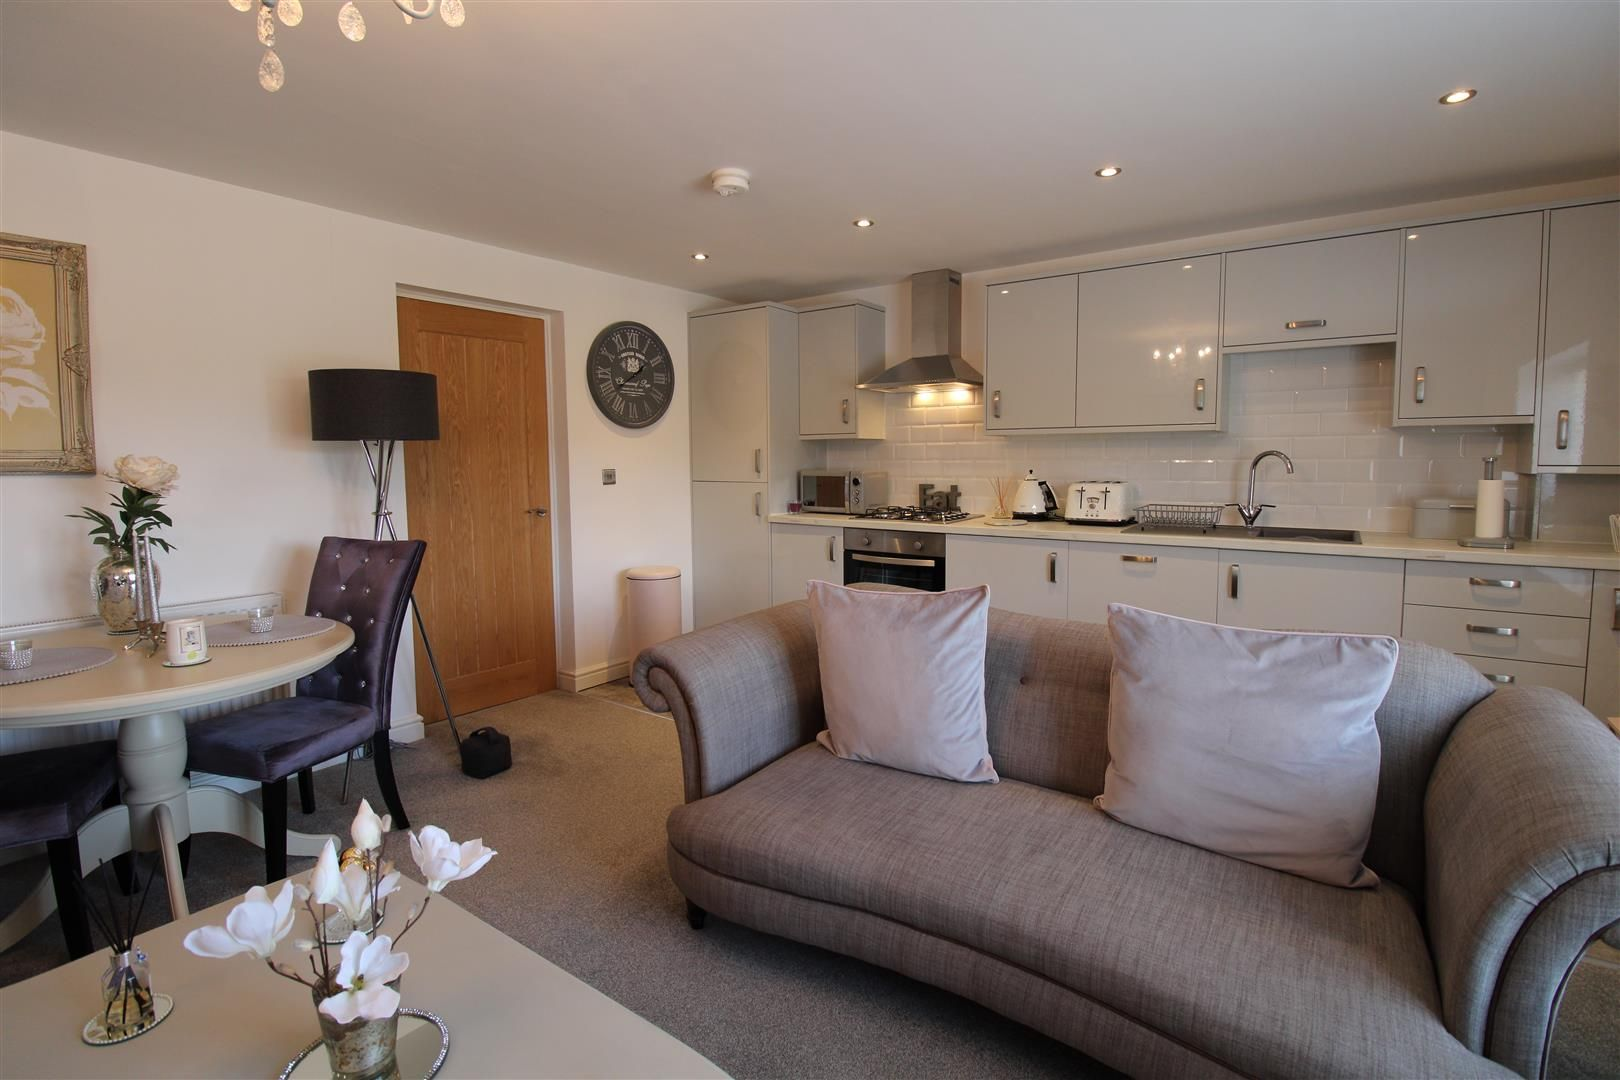 2 bed apartment for sale in Swindon 2